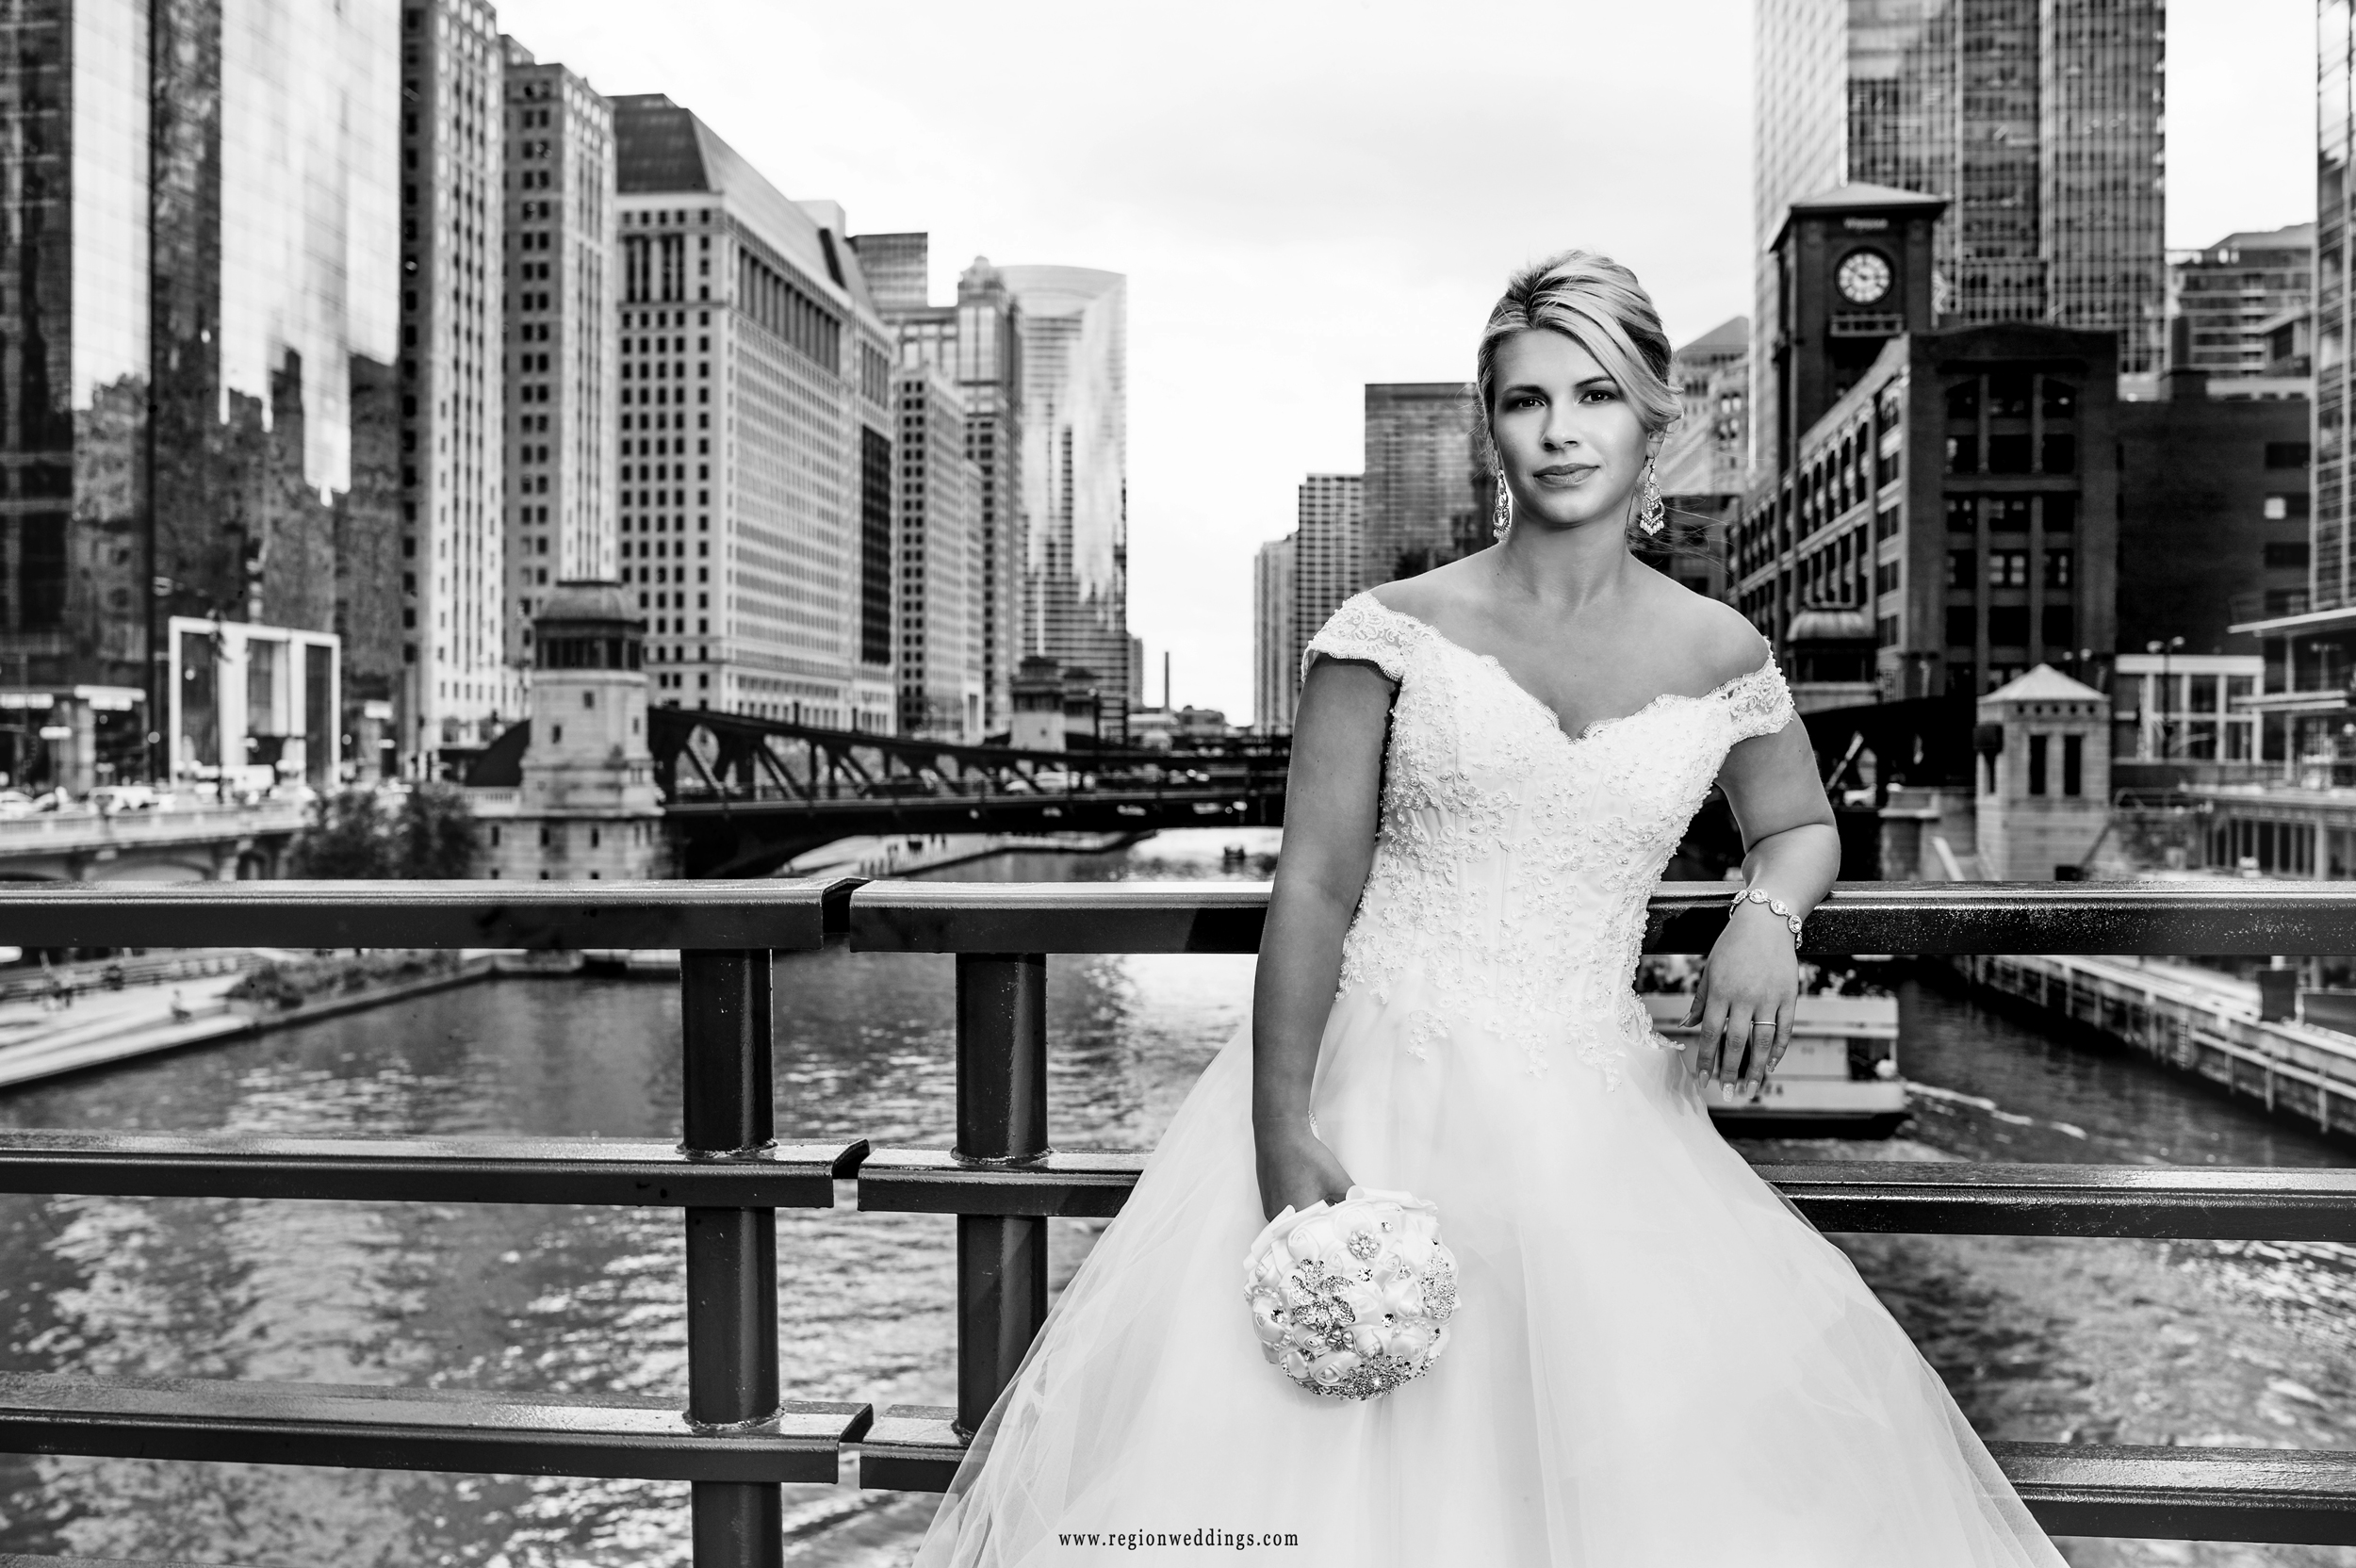 Black and white portrait on the Dearborn Street bridge in Chicago, Illinois.